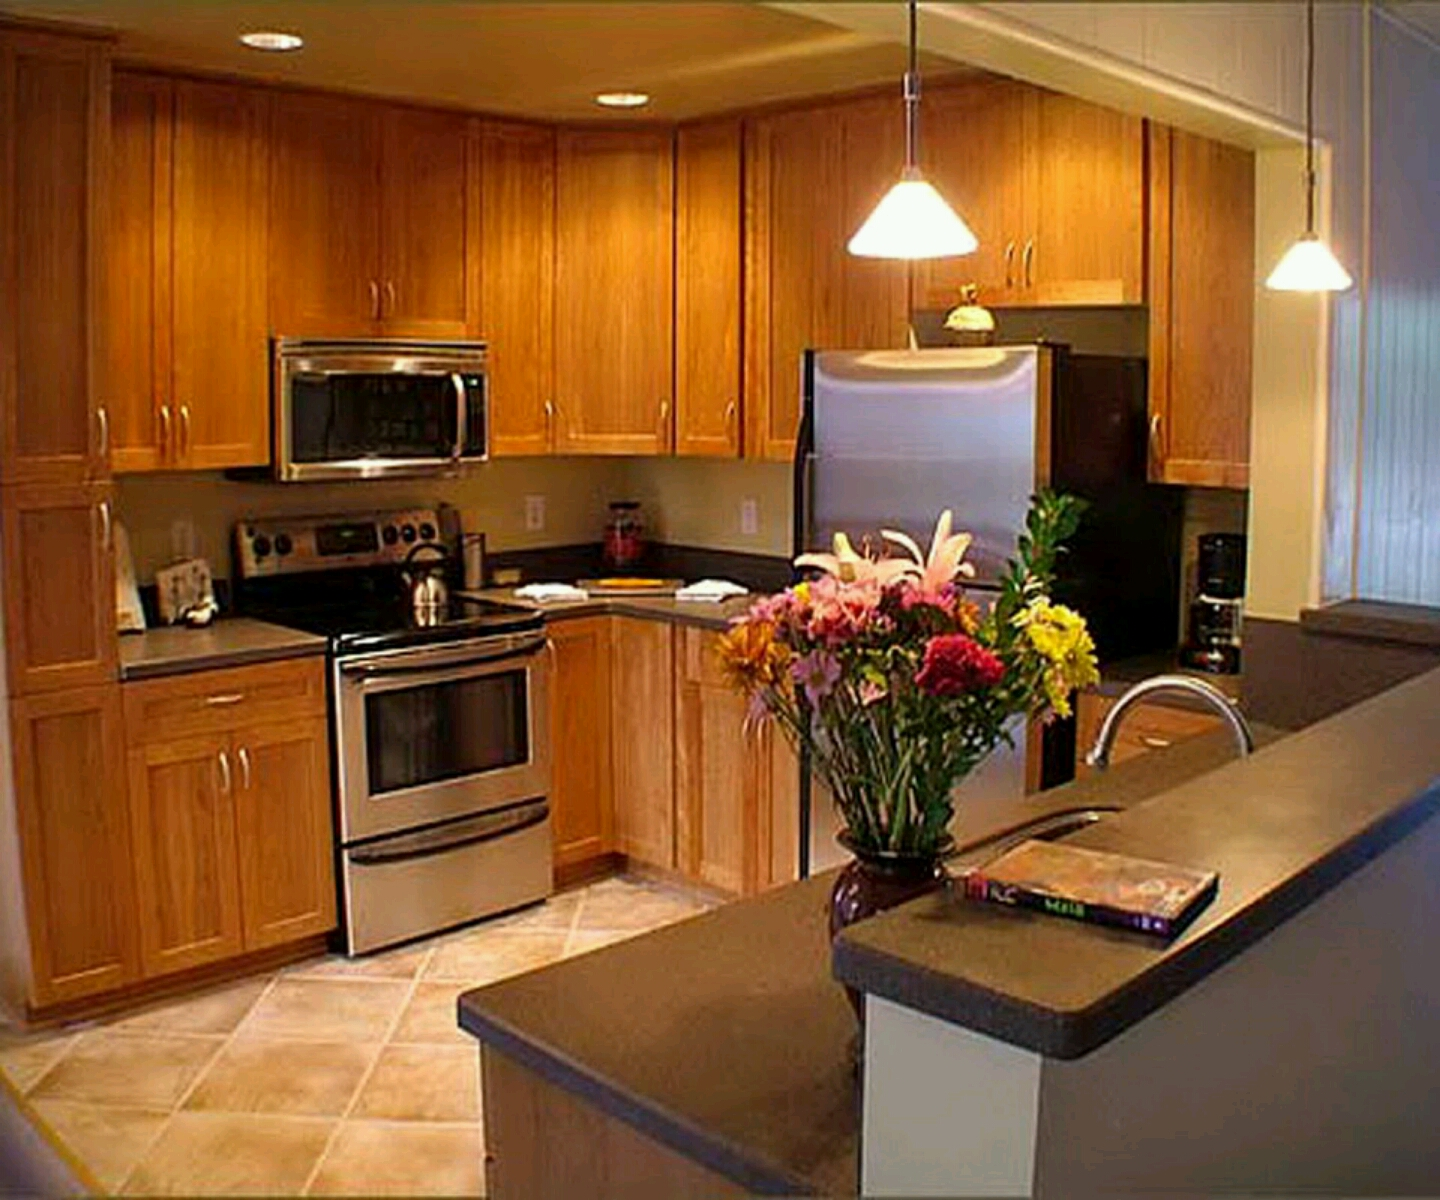 Modern Wood Kitchen Cabinets ~ Modern wooden kitchen cabinets designs furniture gallery